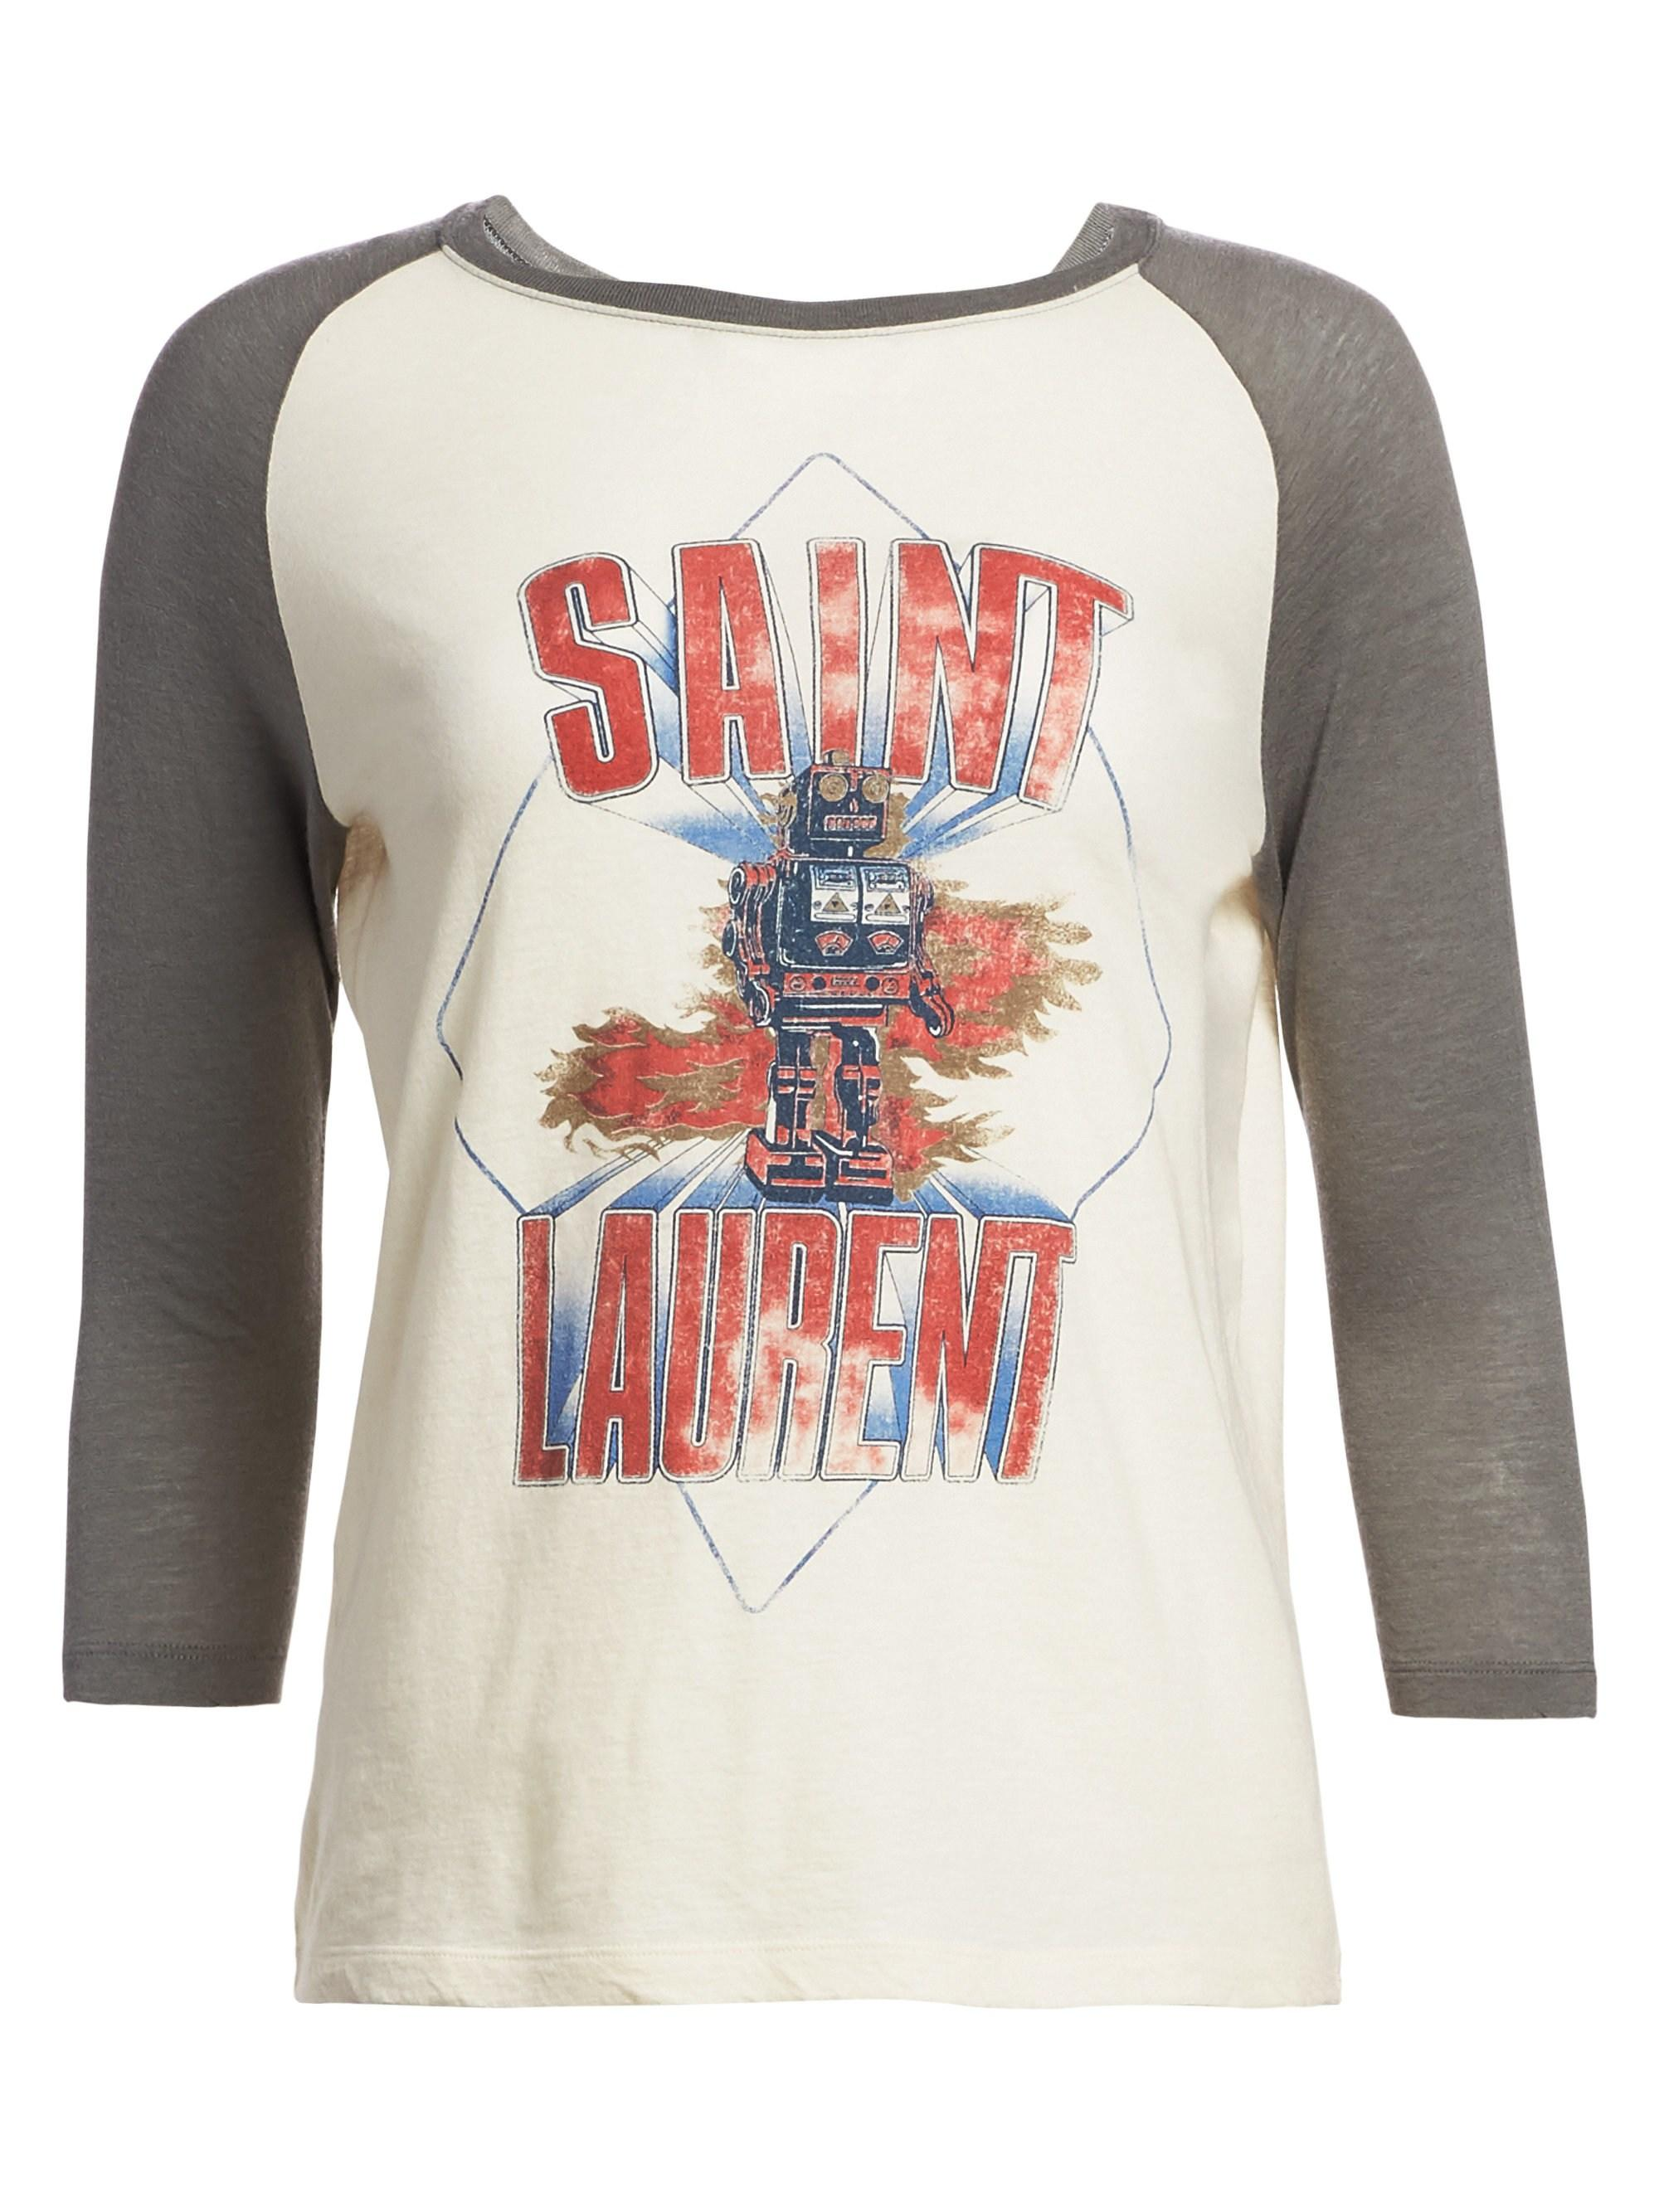 883f497b1e0 Saint Laurent Women's Robot Raglan T-shirt - Natural in Natural - Lyst